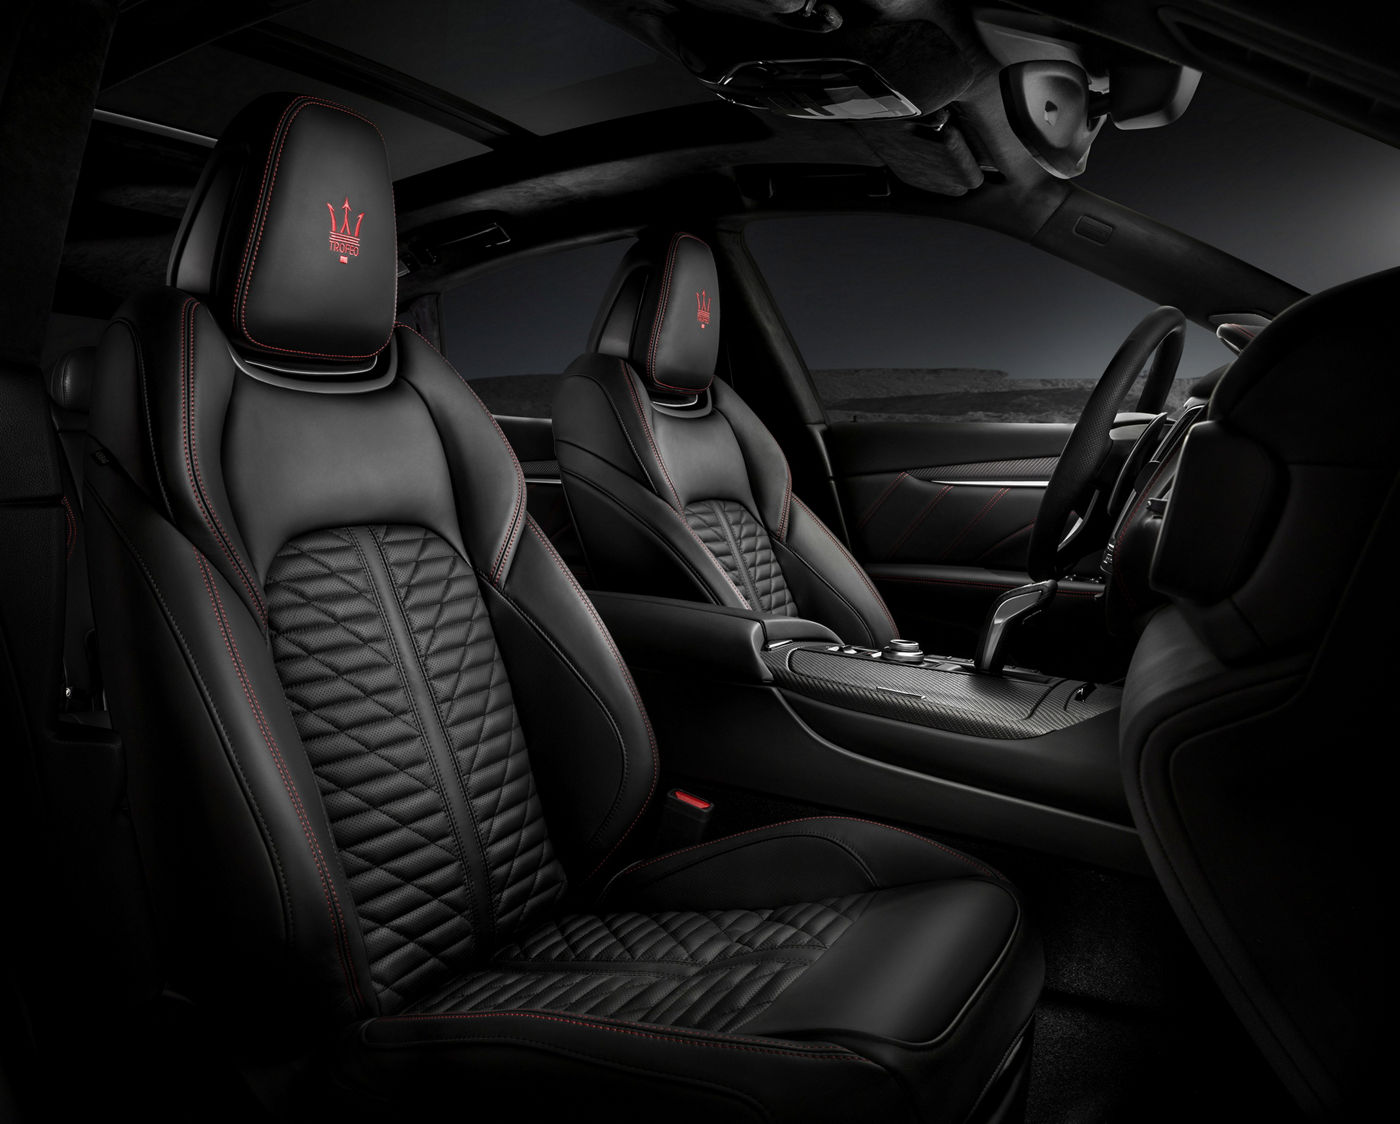 Maserati Levante Trofeo - interior details: dashboard, steering wheel, front seats in black leather and red stitchings